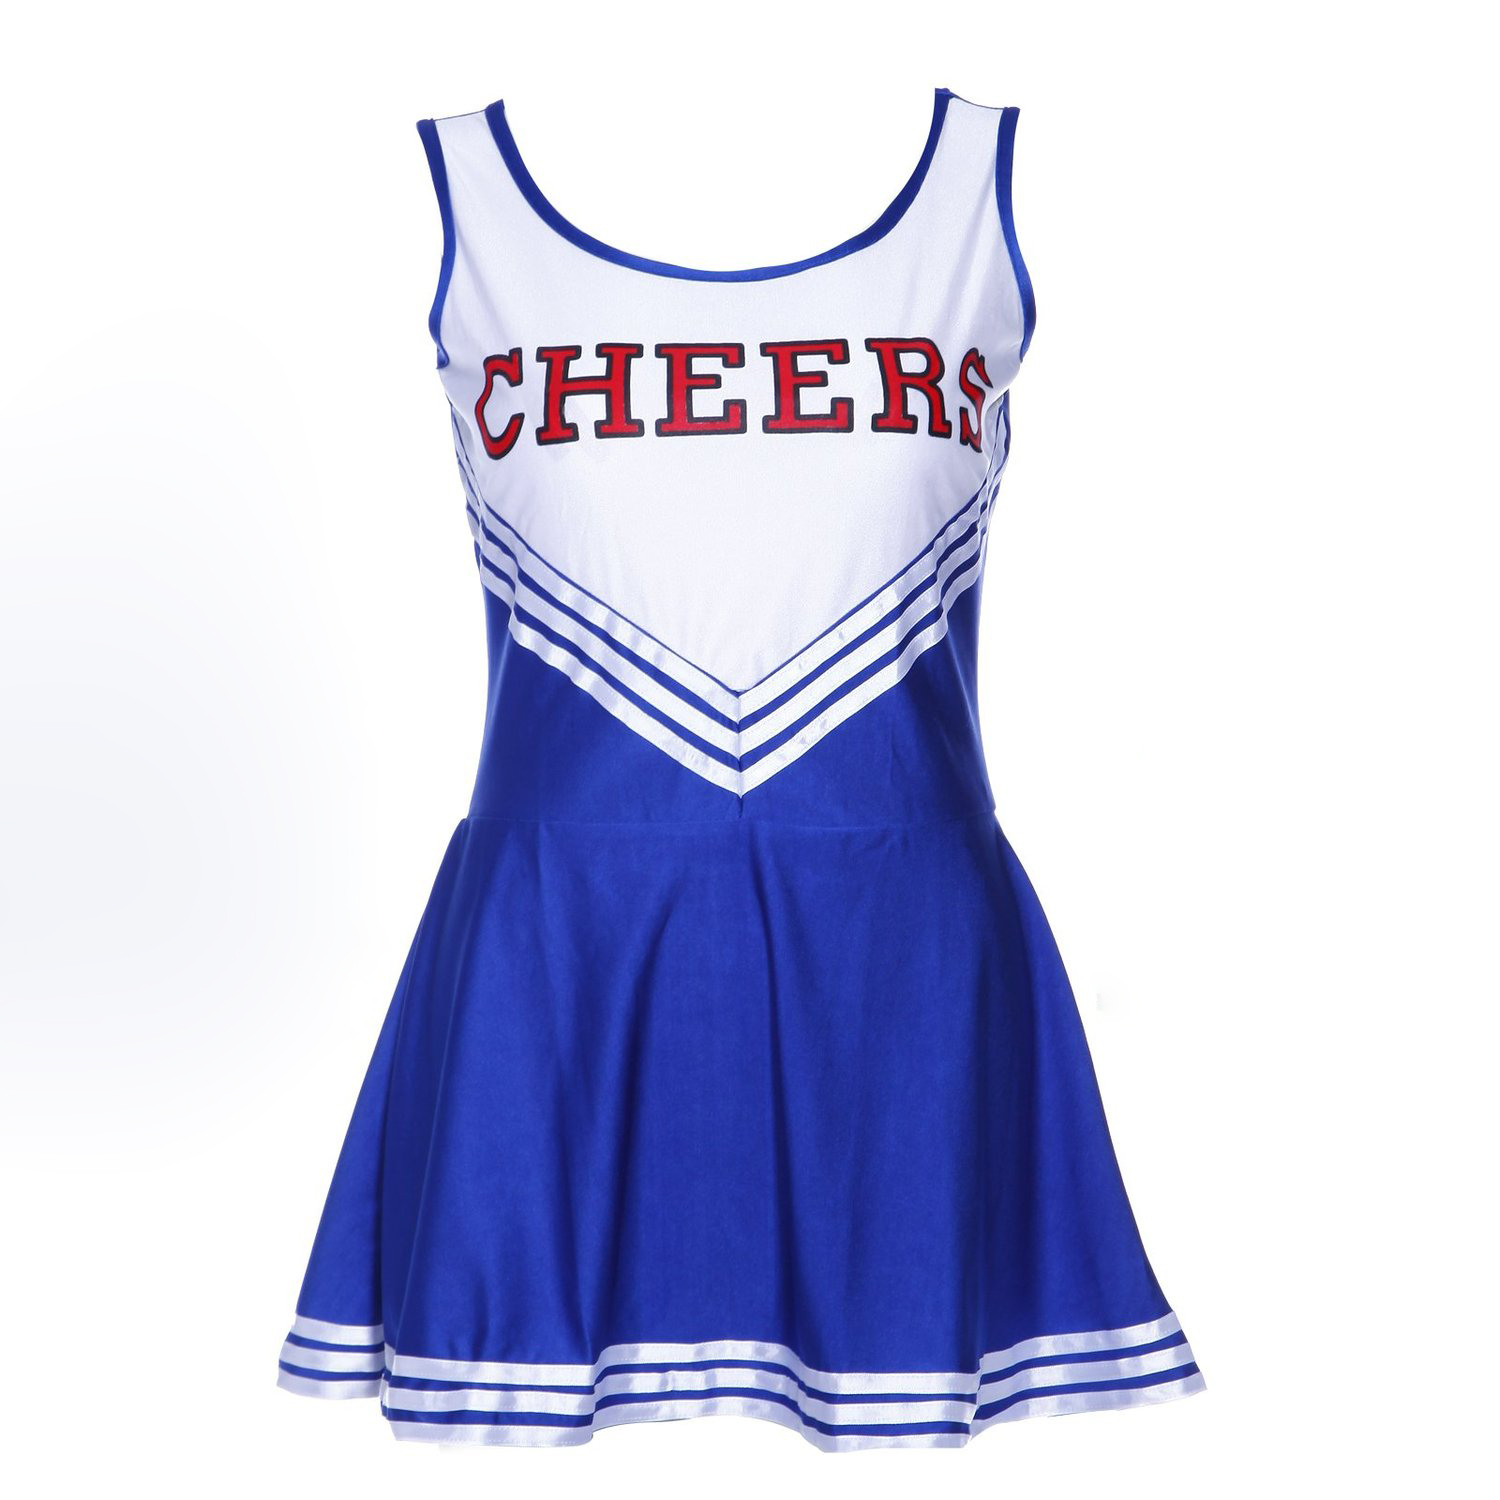 Super sell-Pom-pom girl tank top dress cheer leader blue suit costume XL (42-44) school football ...